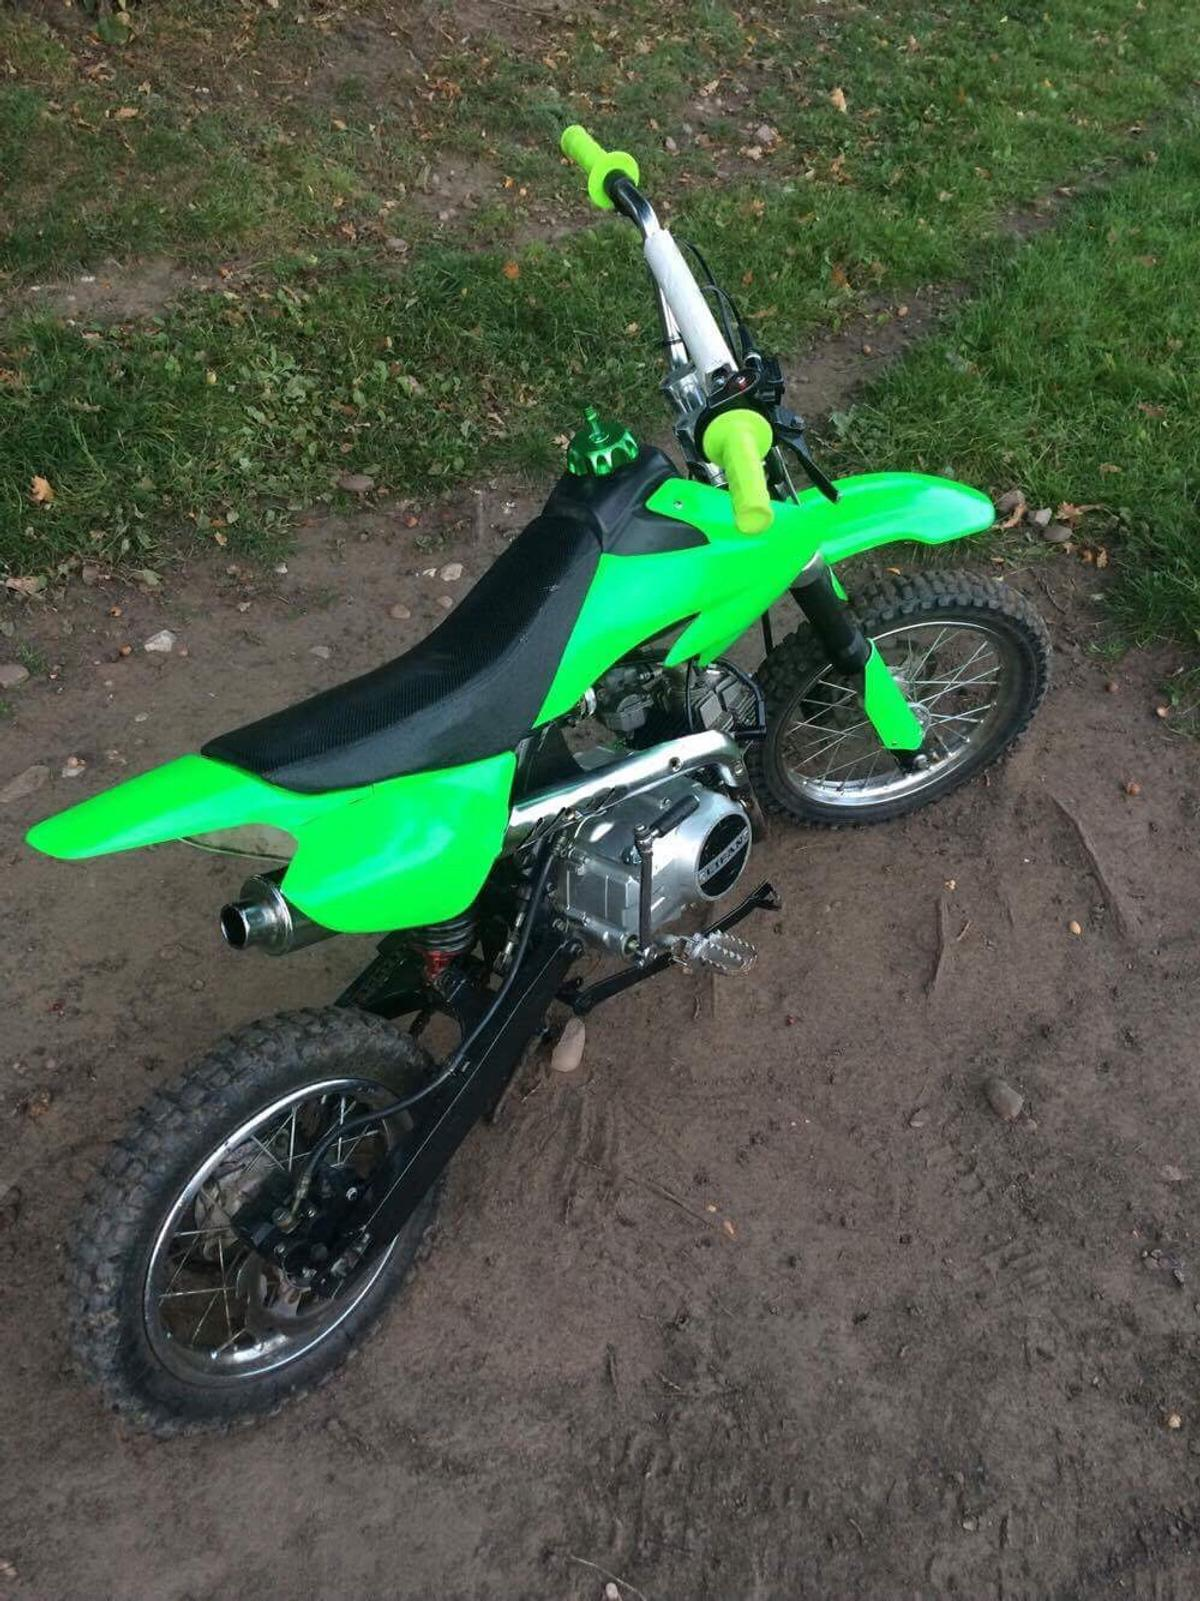 Lifan 125cc pit bike manual in WV10 Wolverhampton for £200 00 for